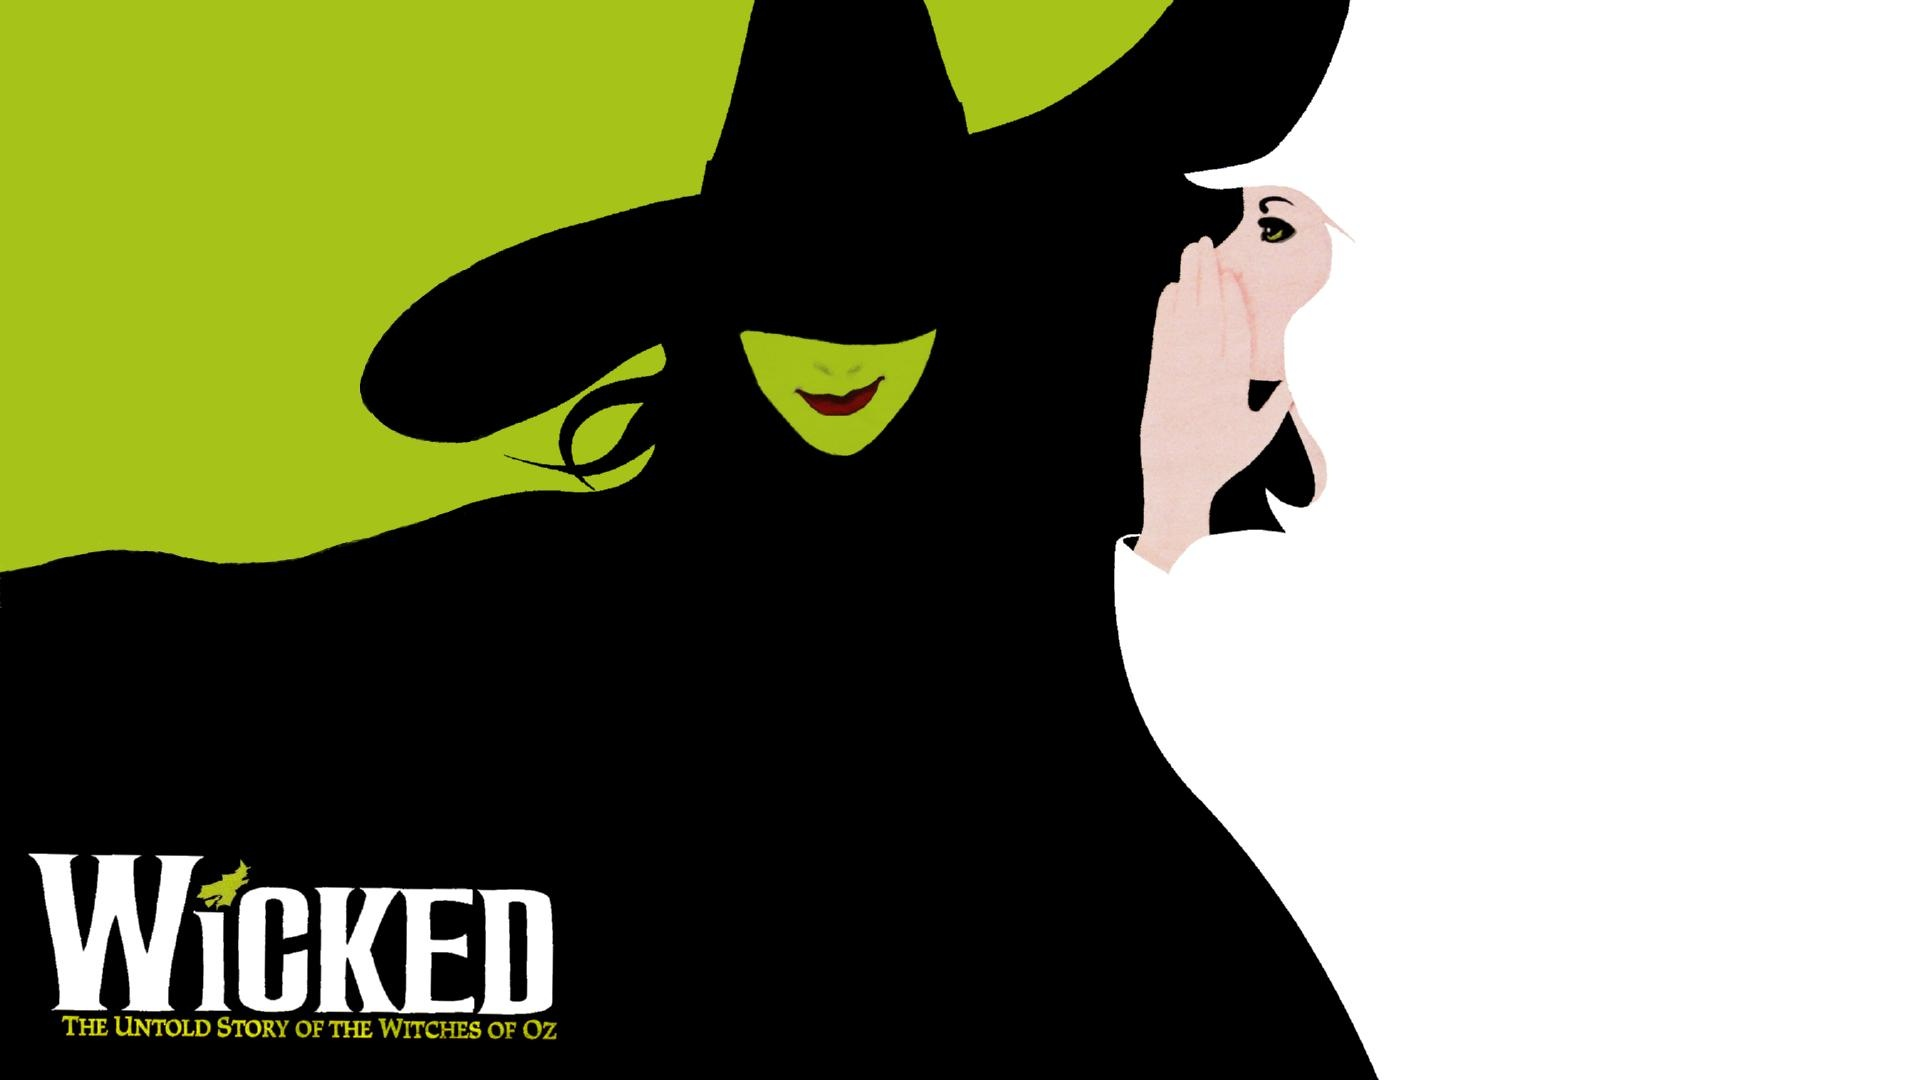 wicked_the_musical_logo-1920x1080